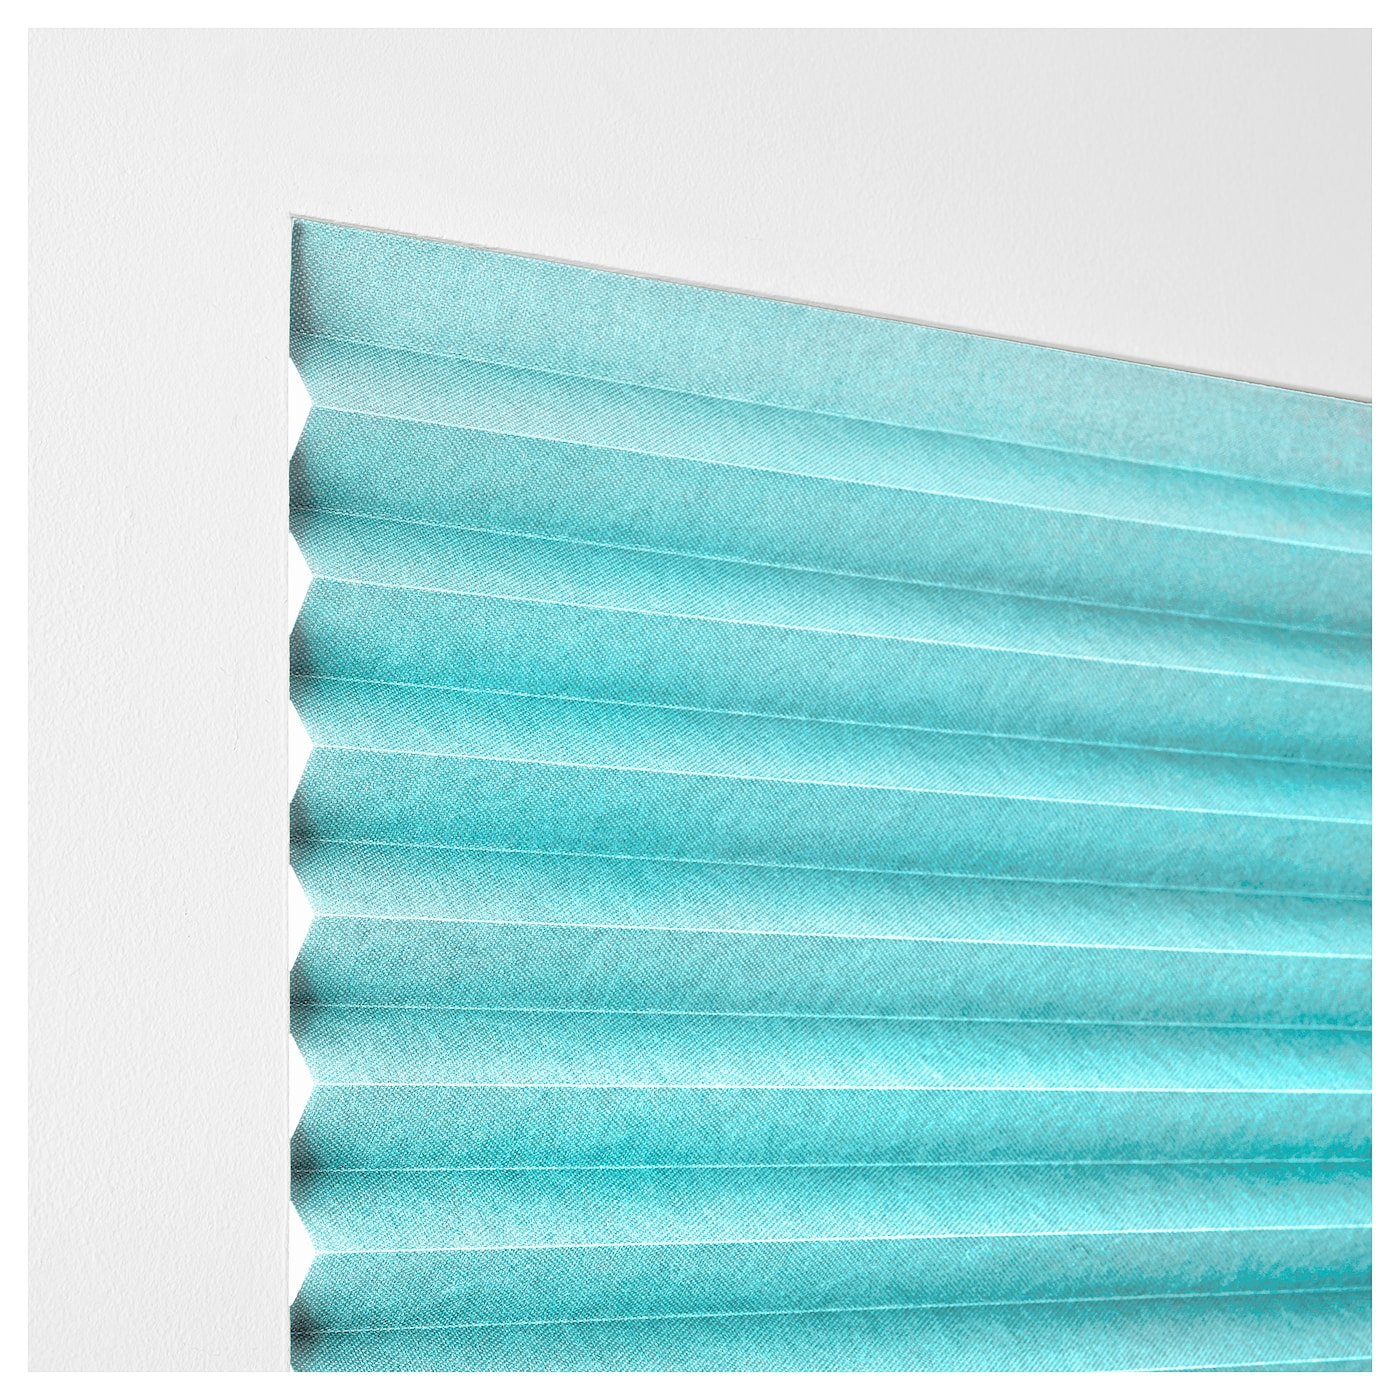 Sommar 2018 pleated blind light turquoise 100x190 cm ikea for Pleated shades ikea